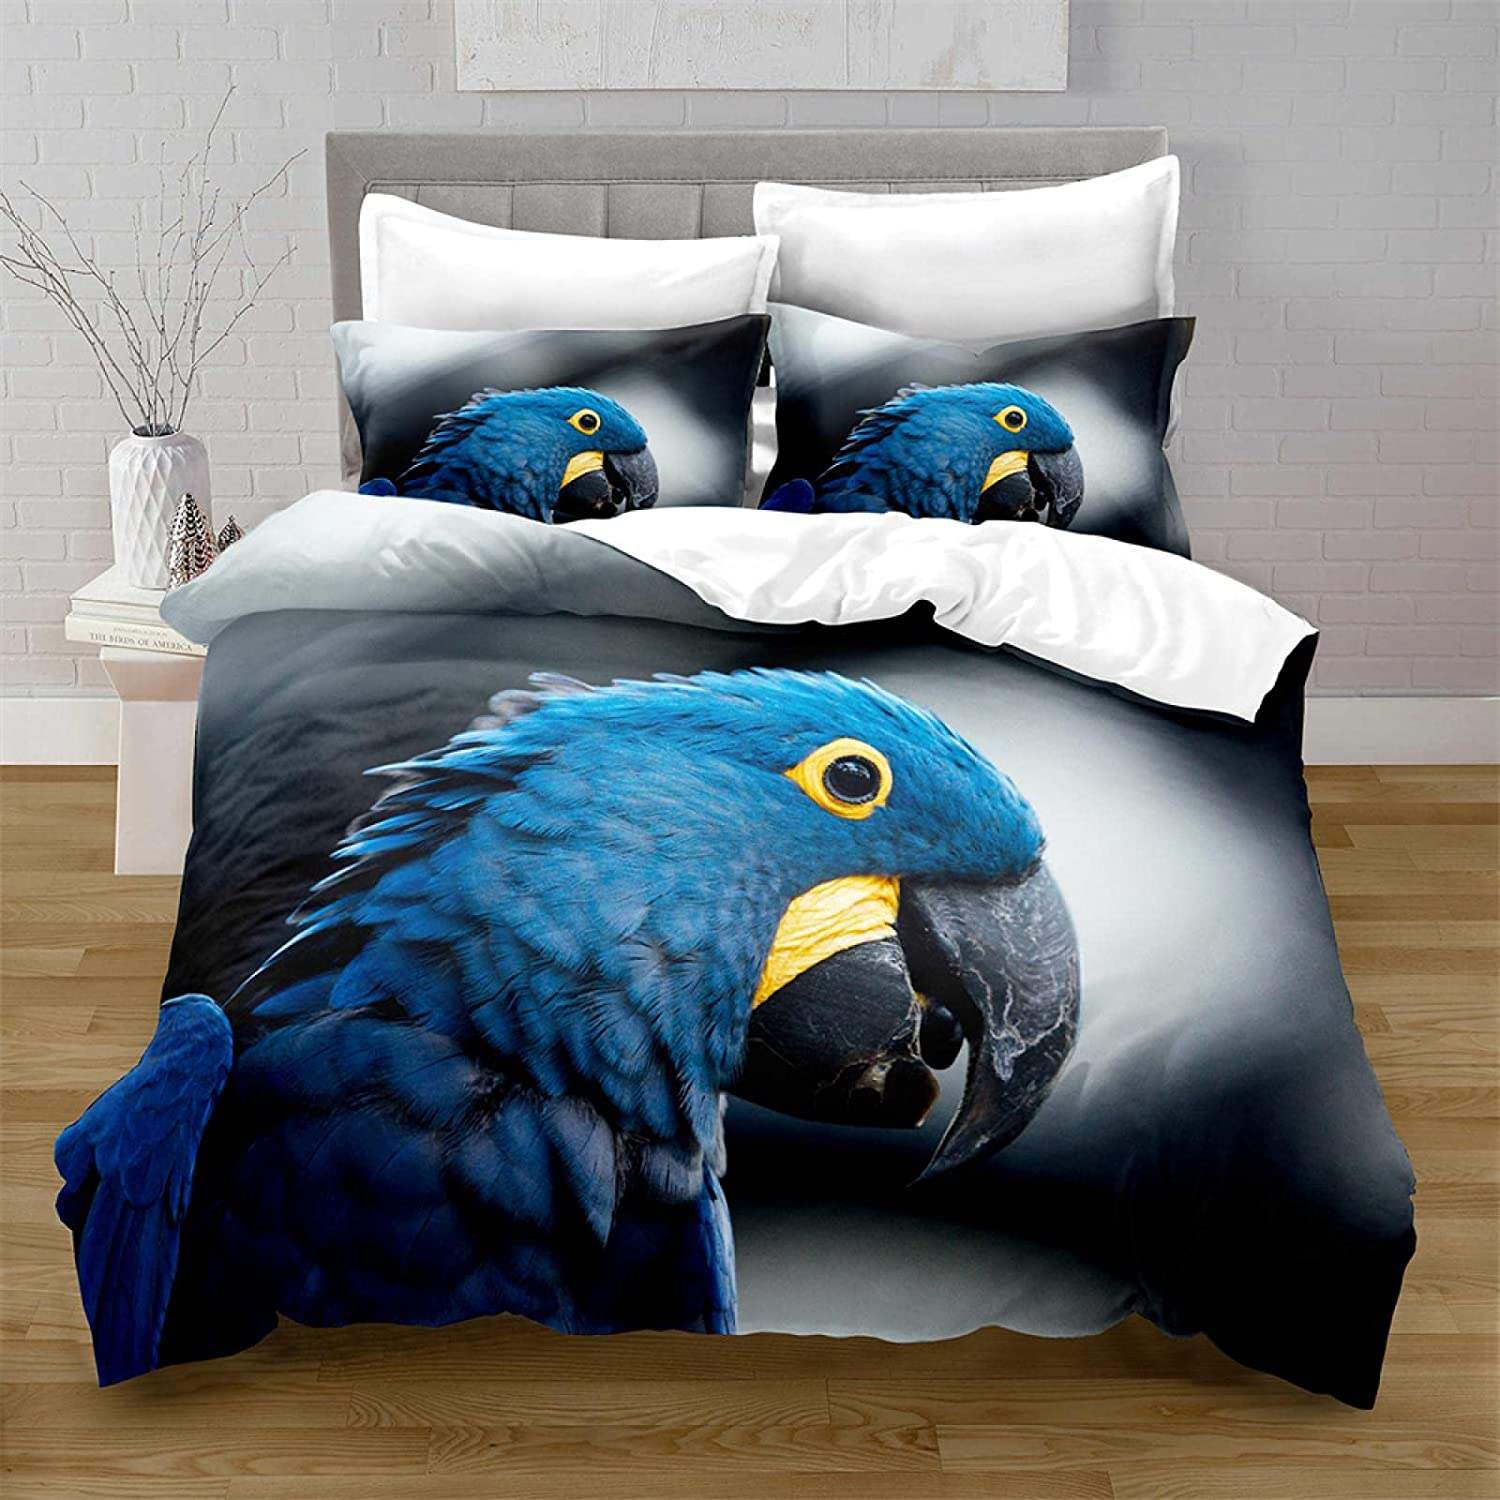 HQHM Duvet Cover King Online limited product 3 Factory outlet Blue Three-Dimensio Animal Parrot Pieces